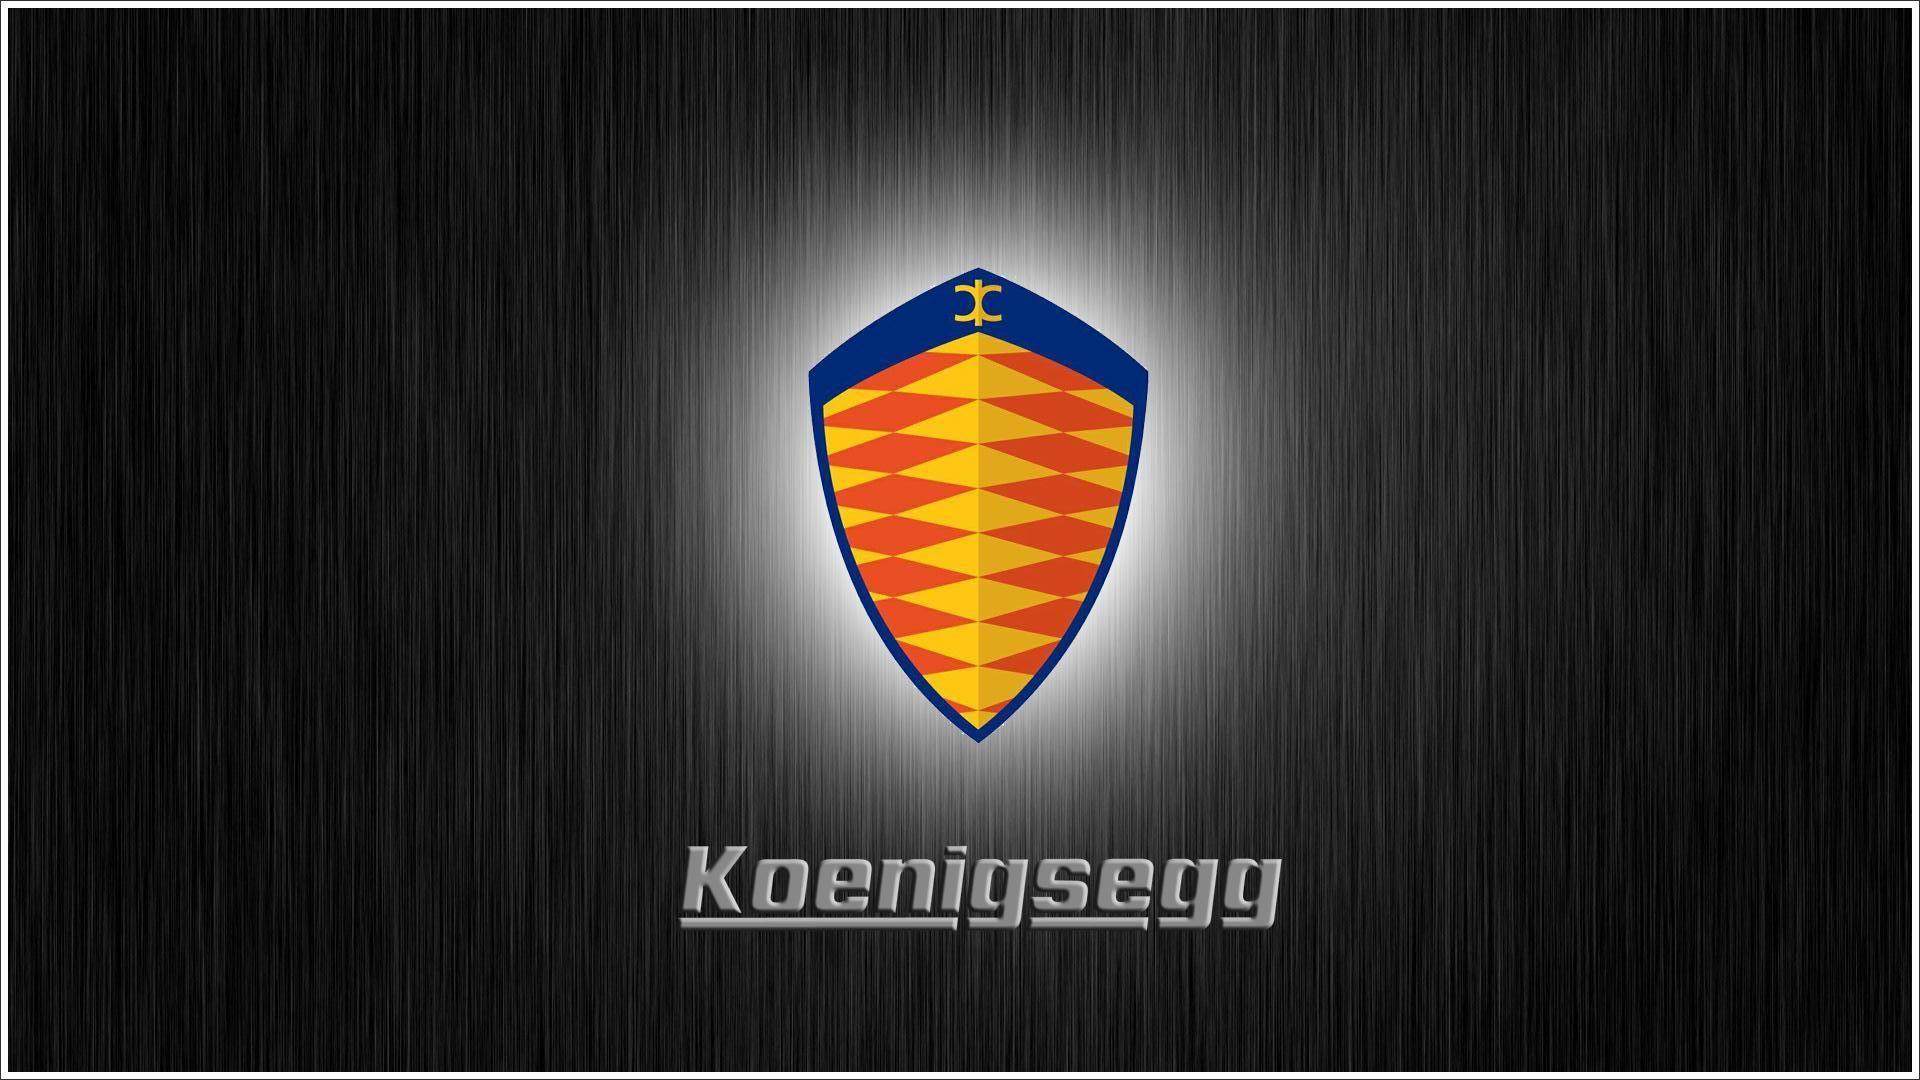 KOENIGSEGG LOGO DESKTOP HD BACKGROUND